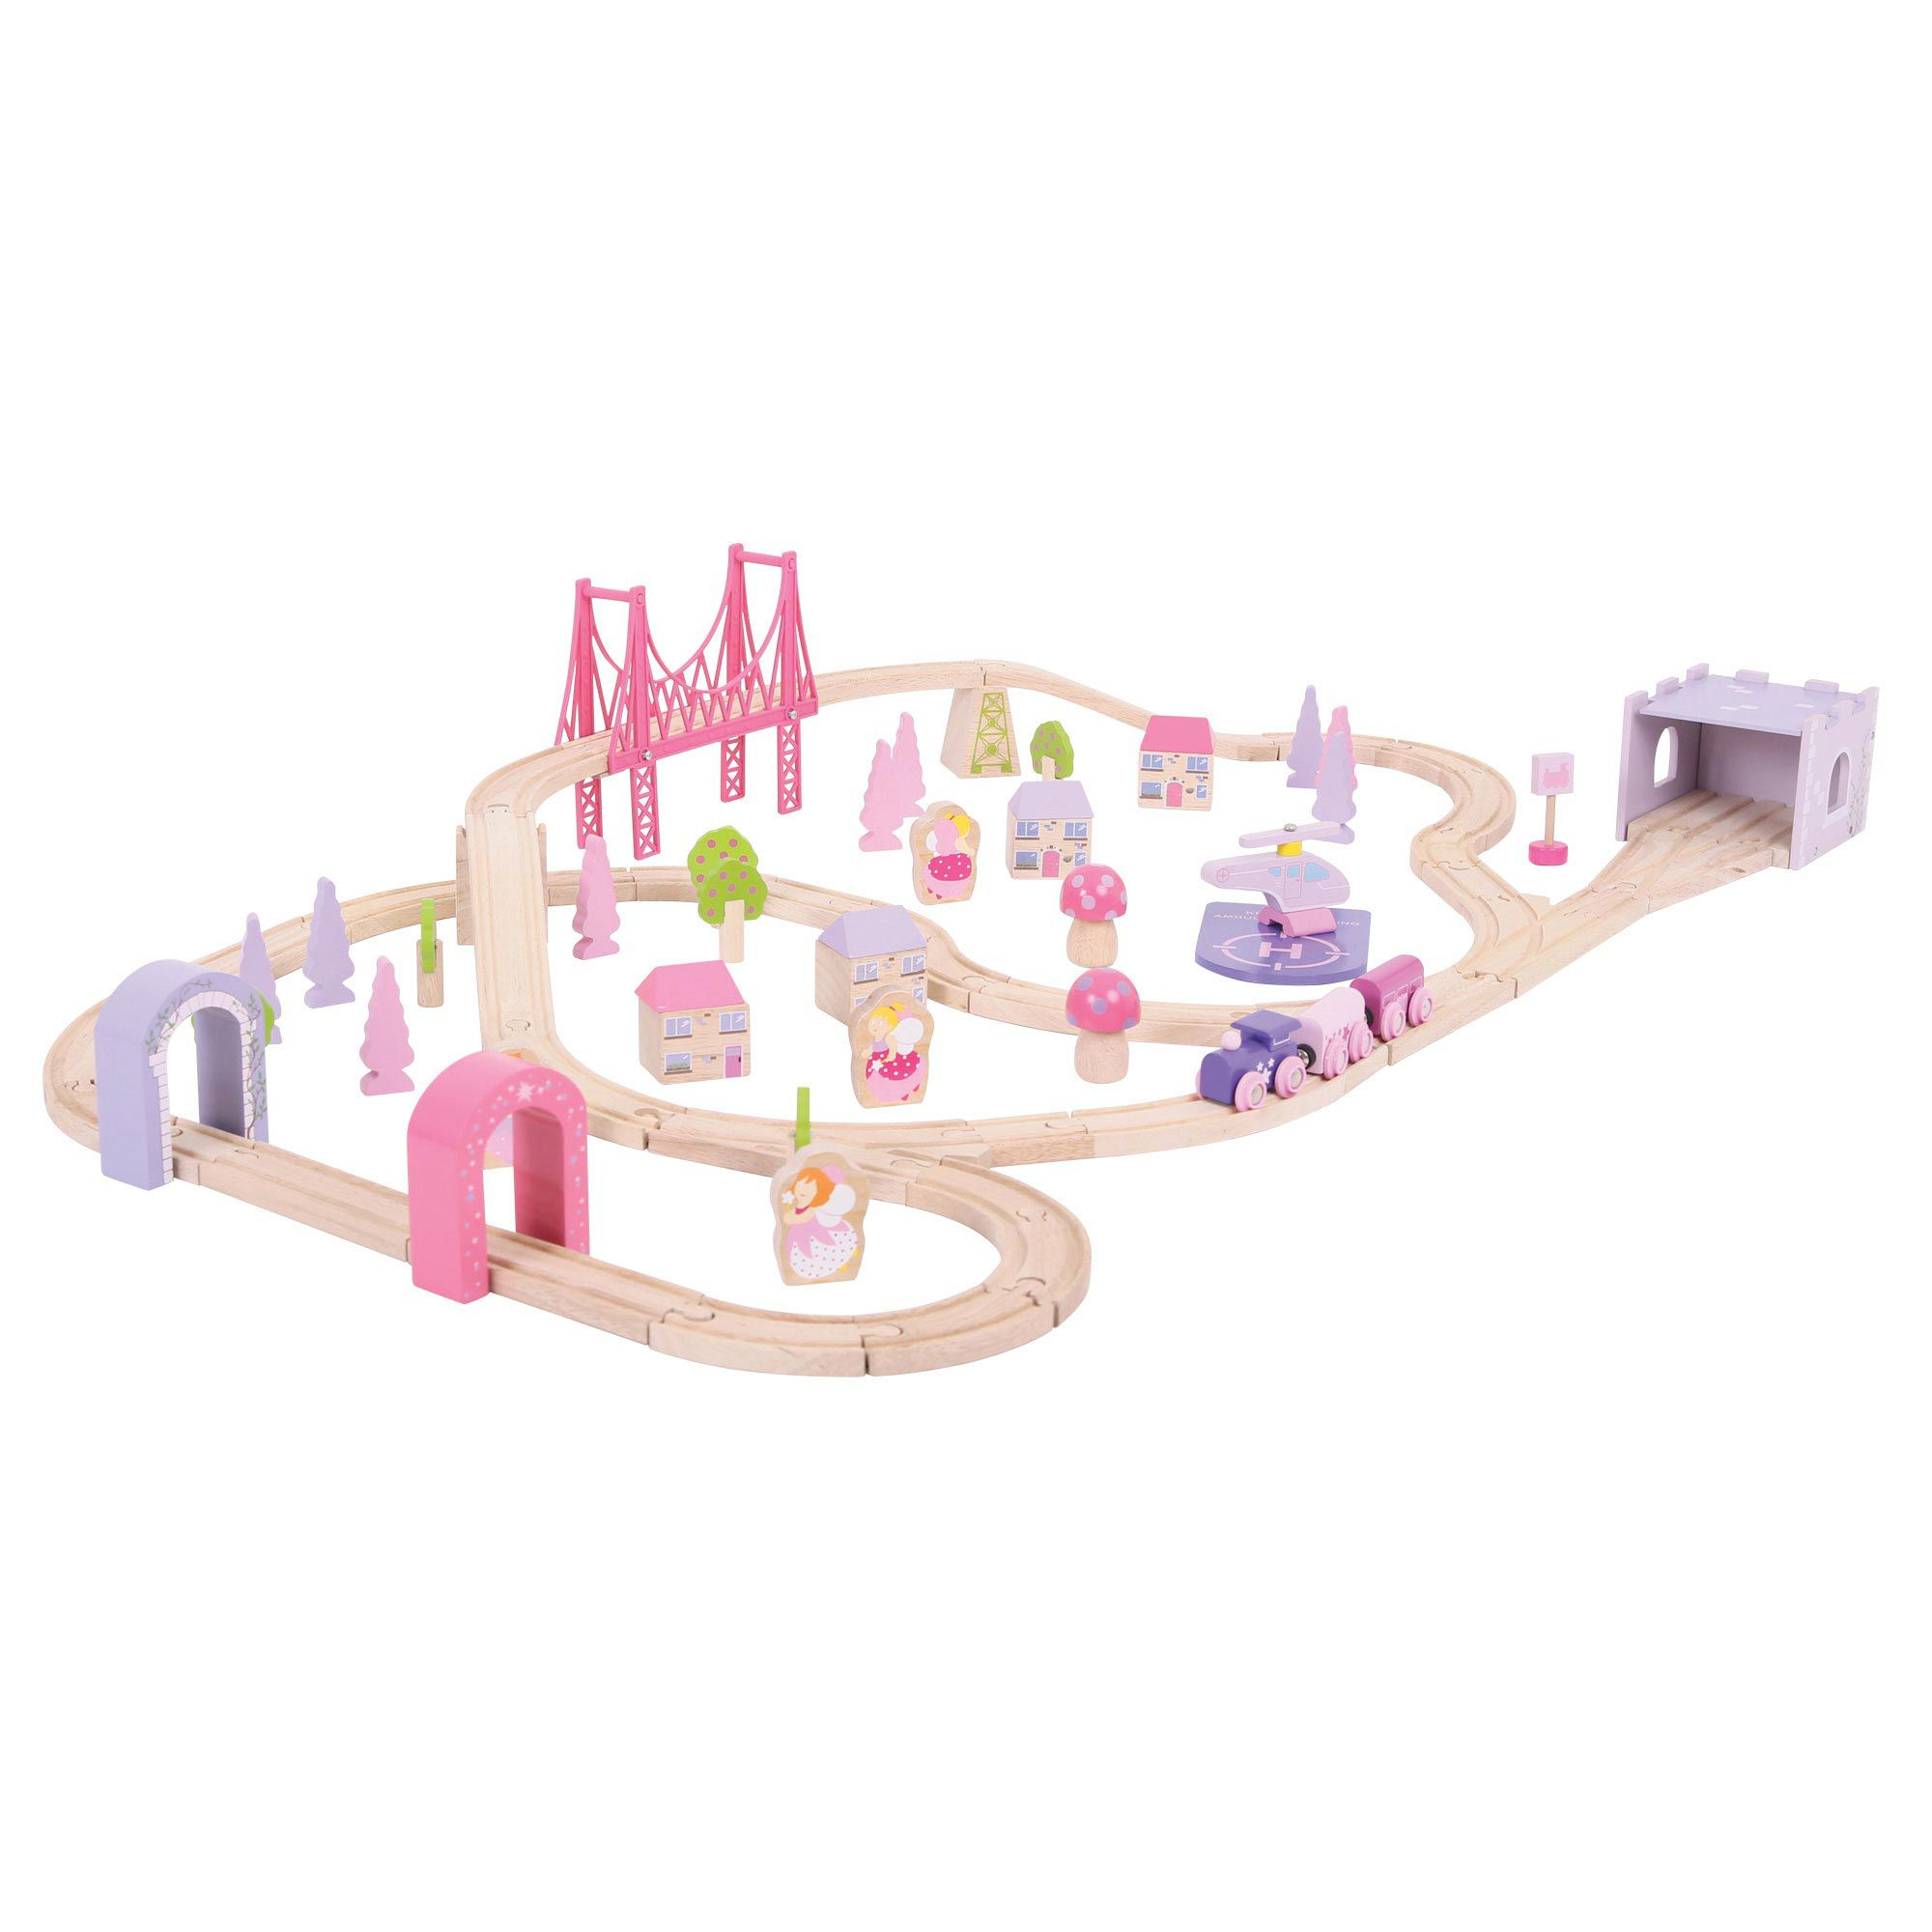 Bigjigs Rail Fairy Town Train Set